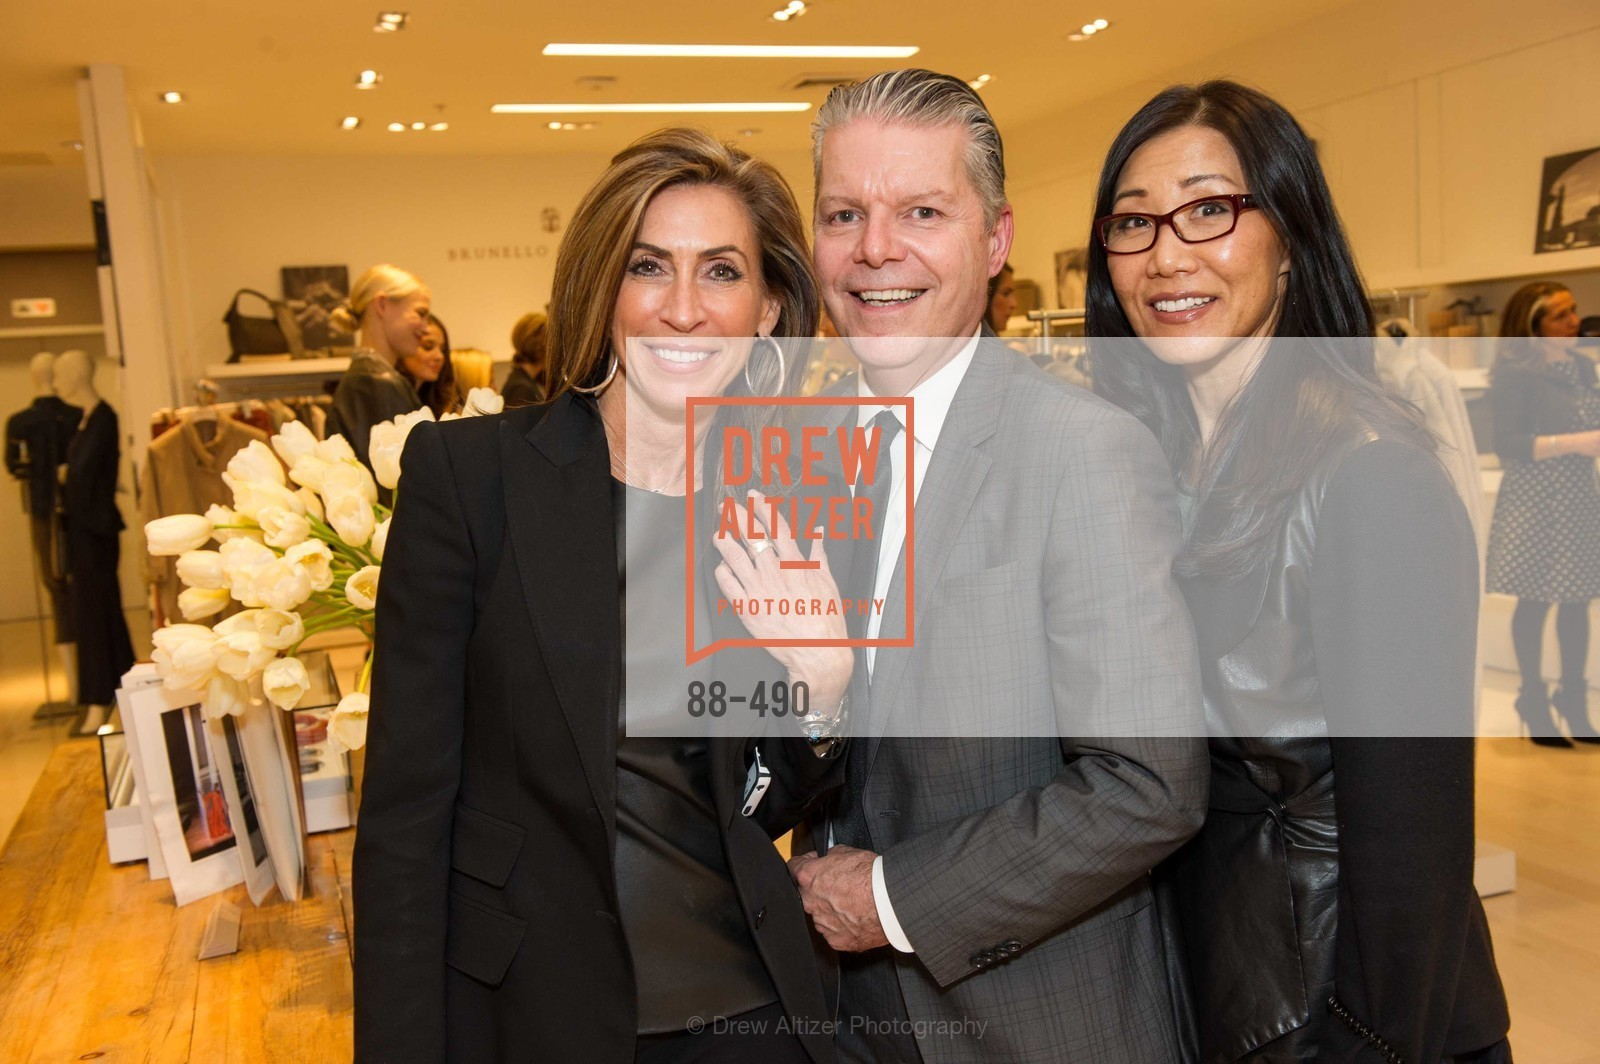 Top Picks, Nancy Kukacka Hosts Brunello Cucinelli at SAKS FIFTH AVENUE Benefitting New Door Ventures, April 2nd, 2014, Photo,Drew Altizer, Drew Altizer Photography, full-service event agency, private events, San Francisco photographer, photographer California